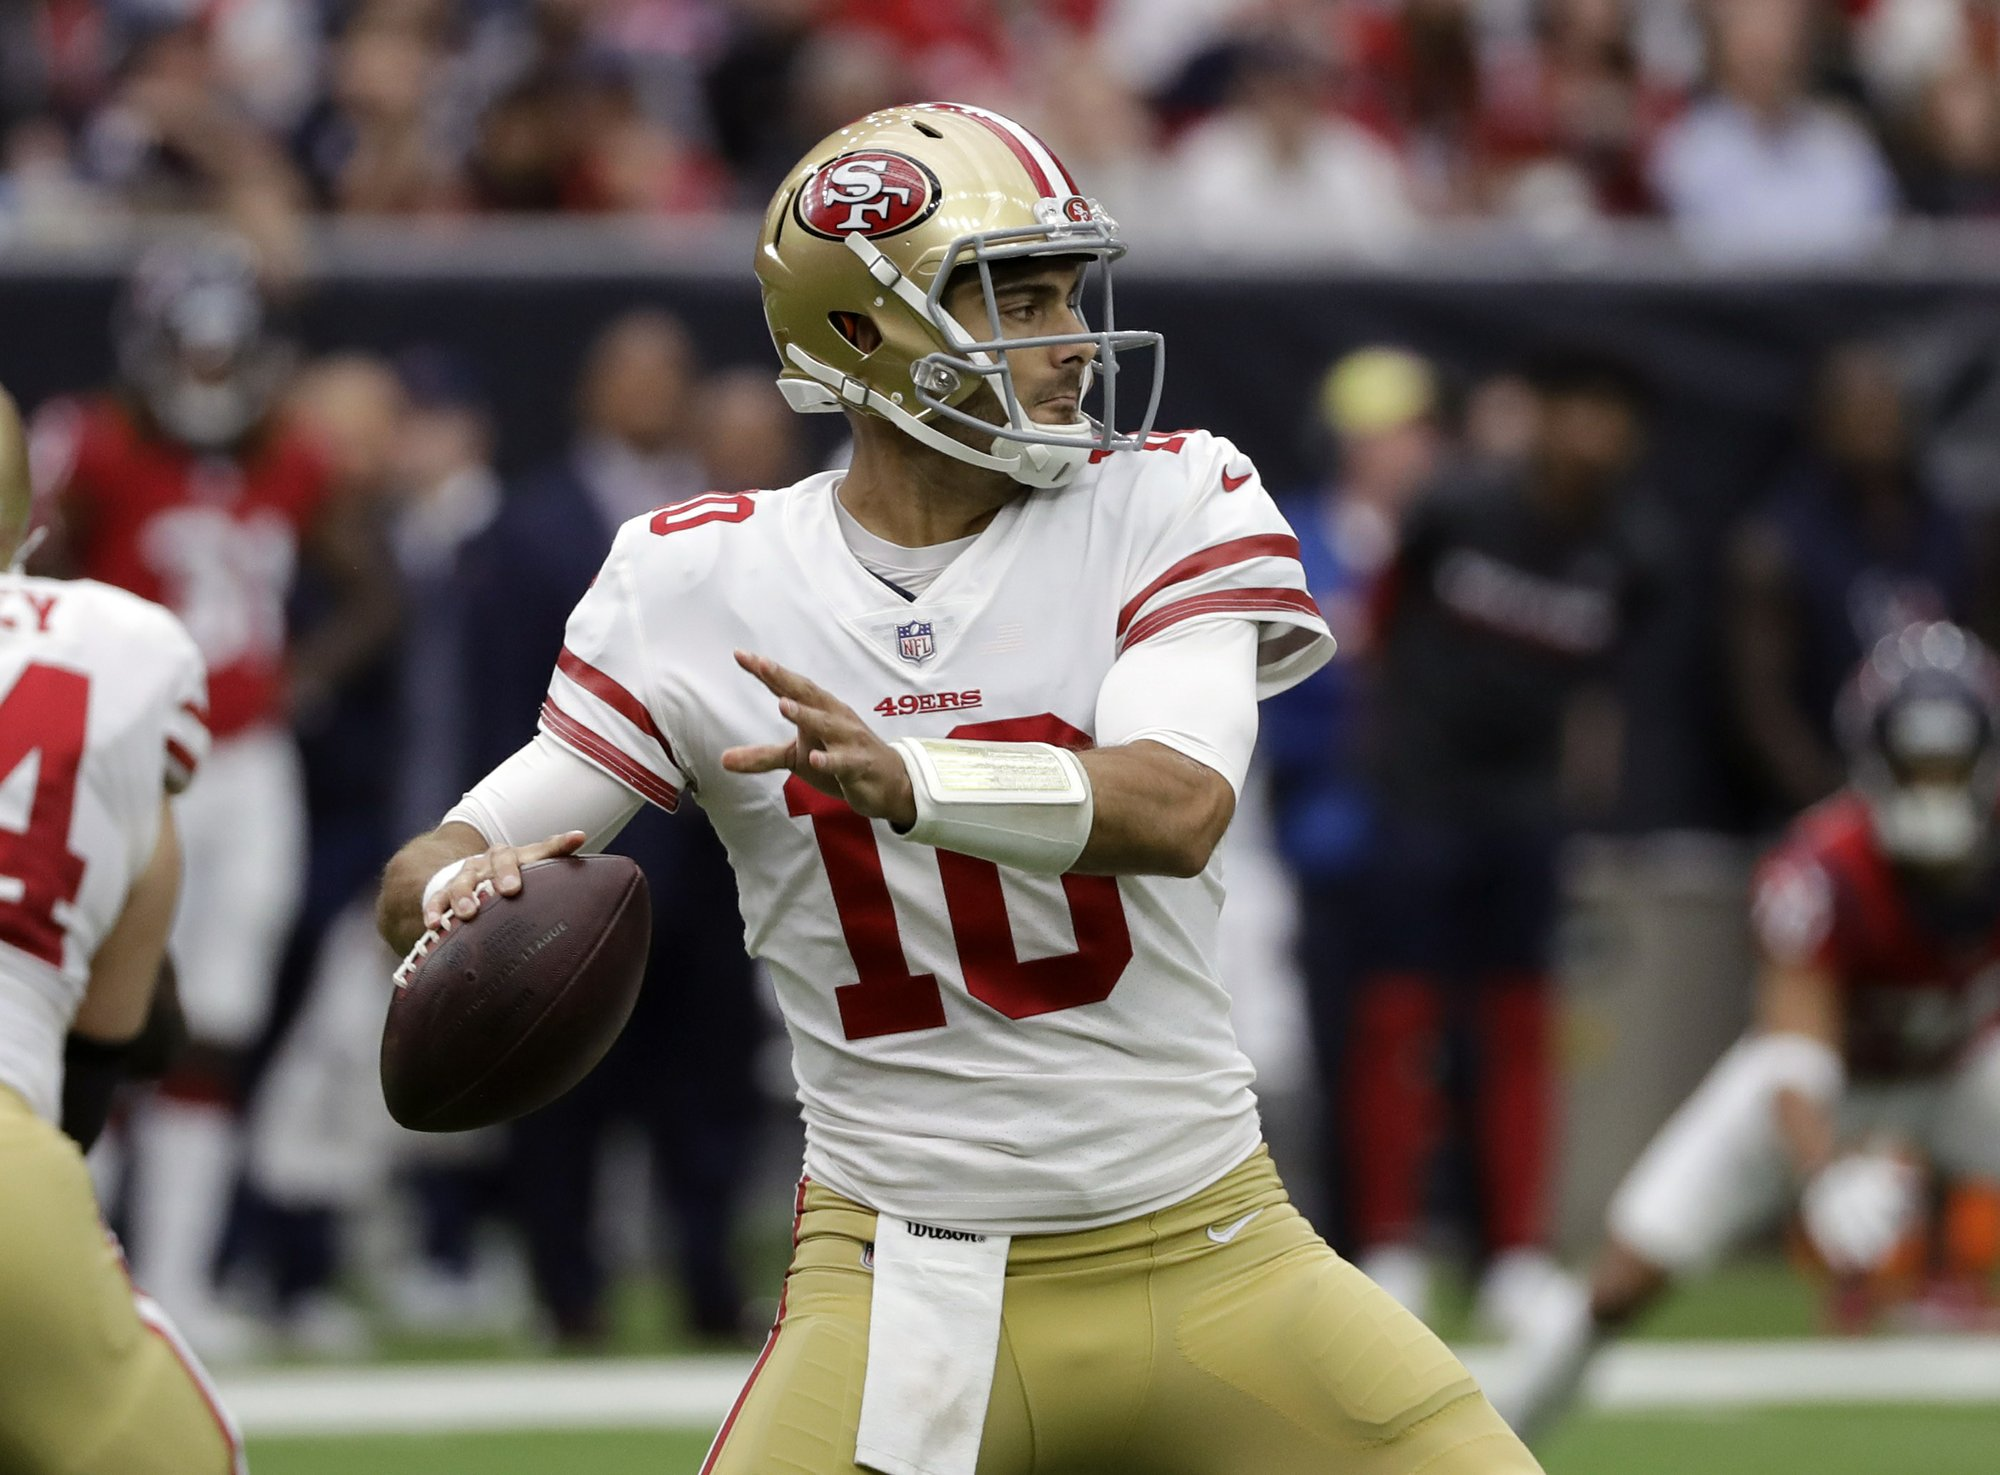 ced2fe975 Garoppolo leads 49ers to 26-16 win over Texans